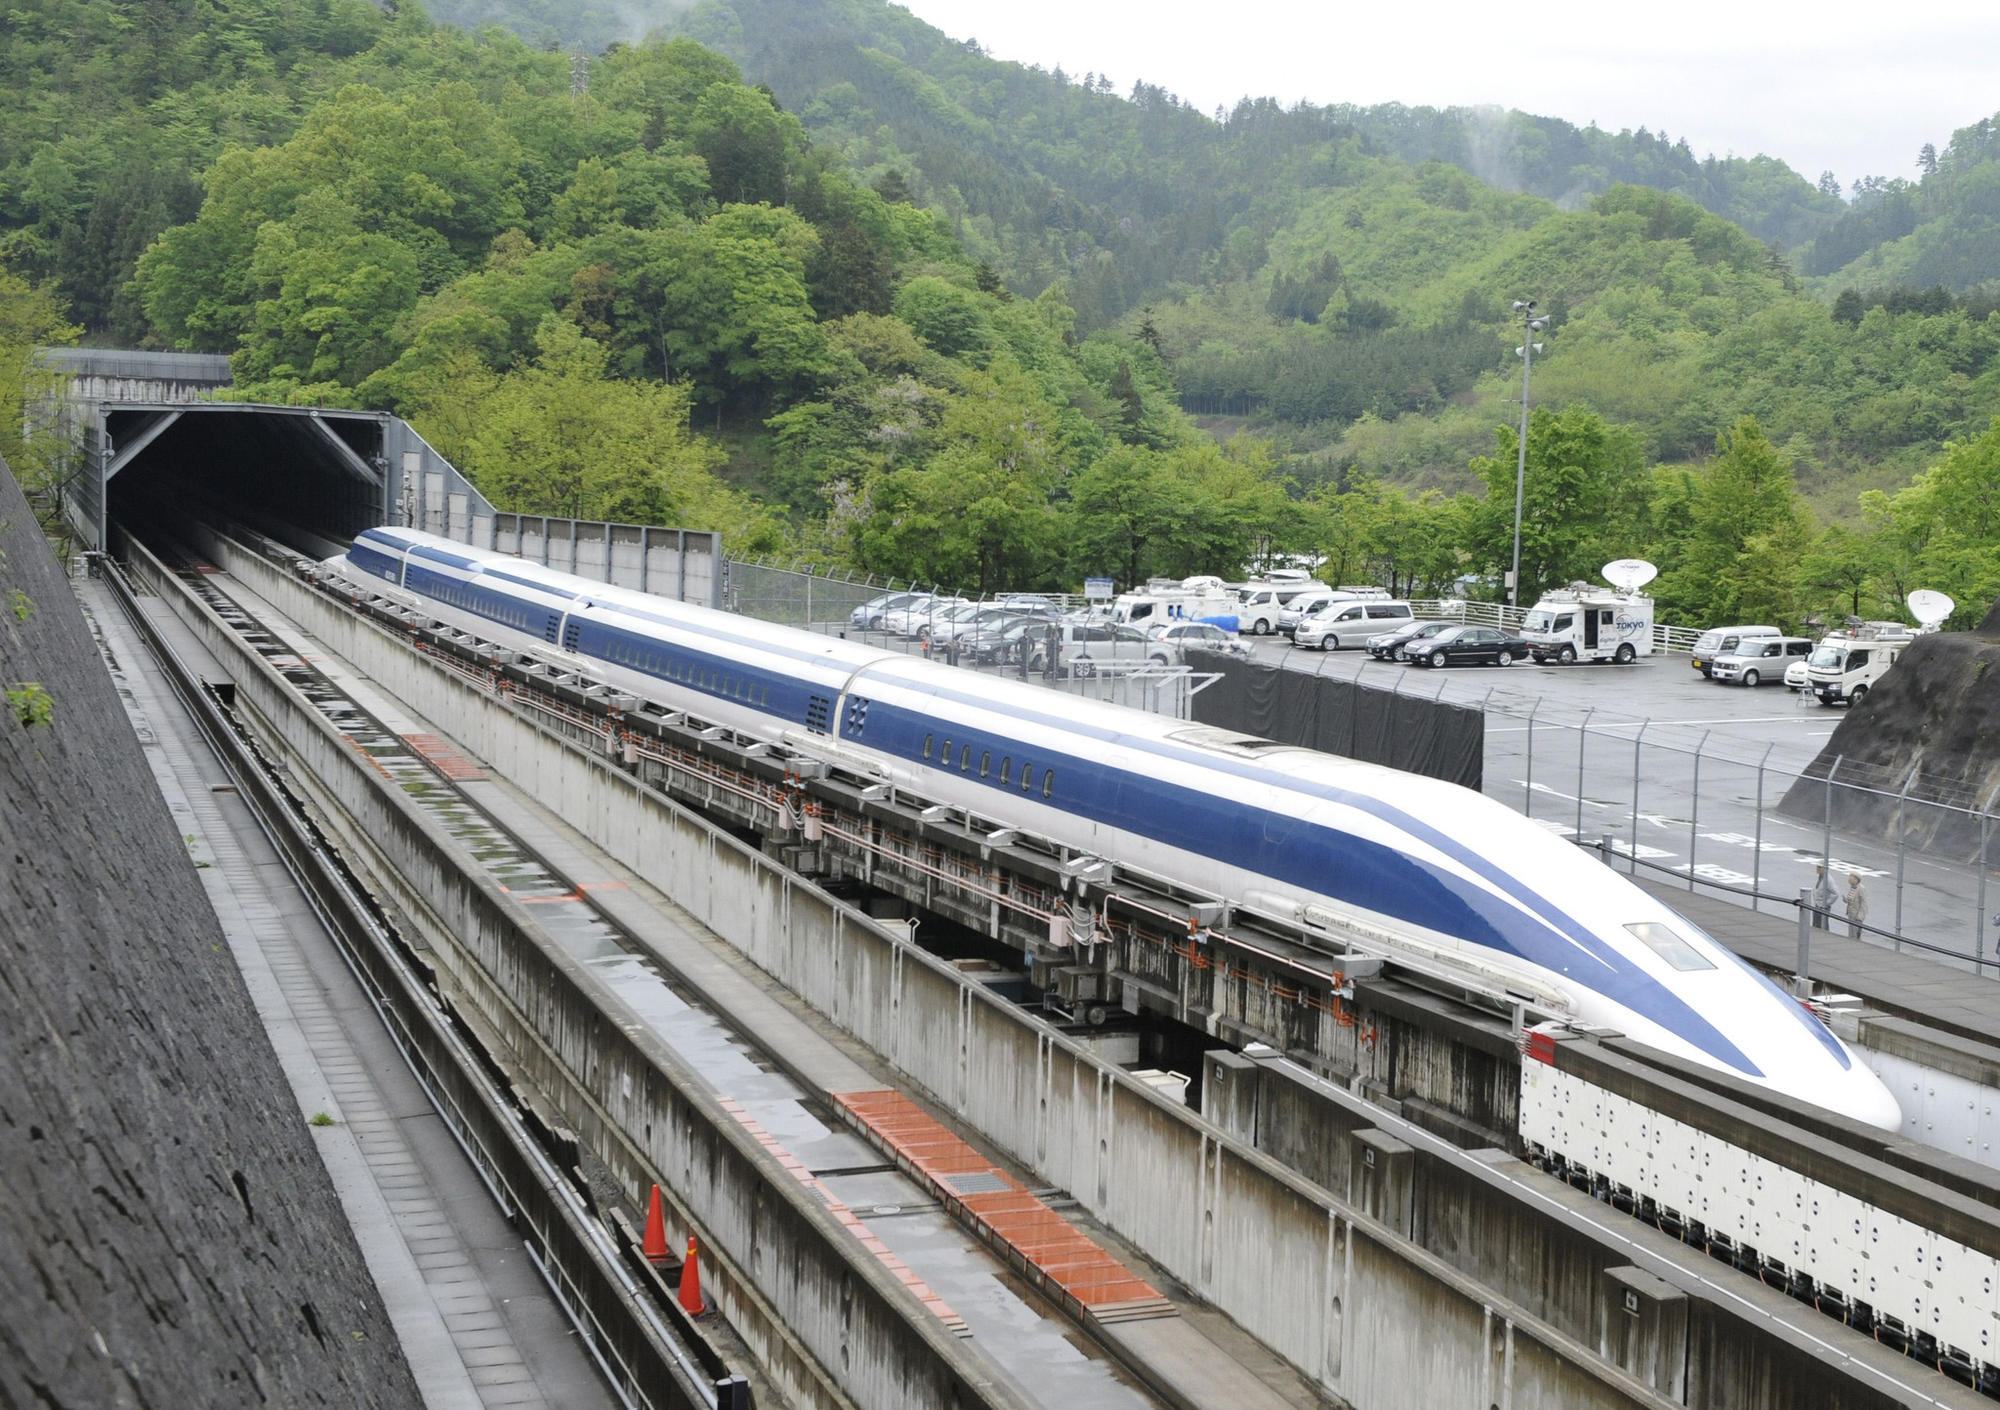 It can be done': Futuristic Japanese maglev train could